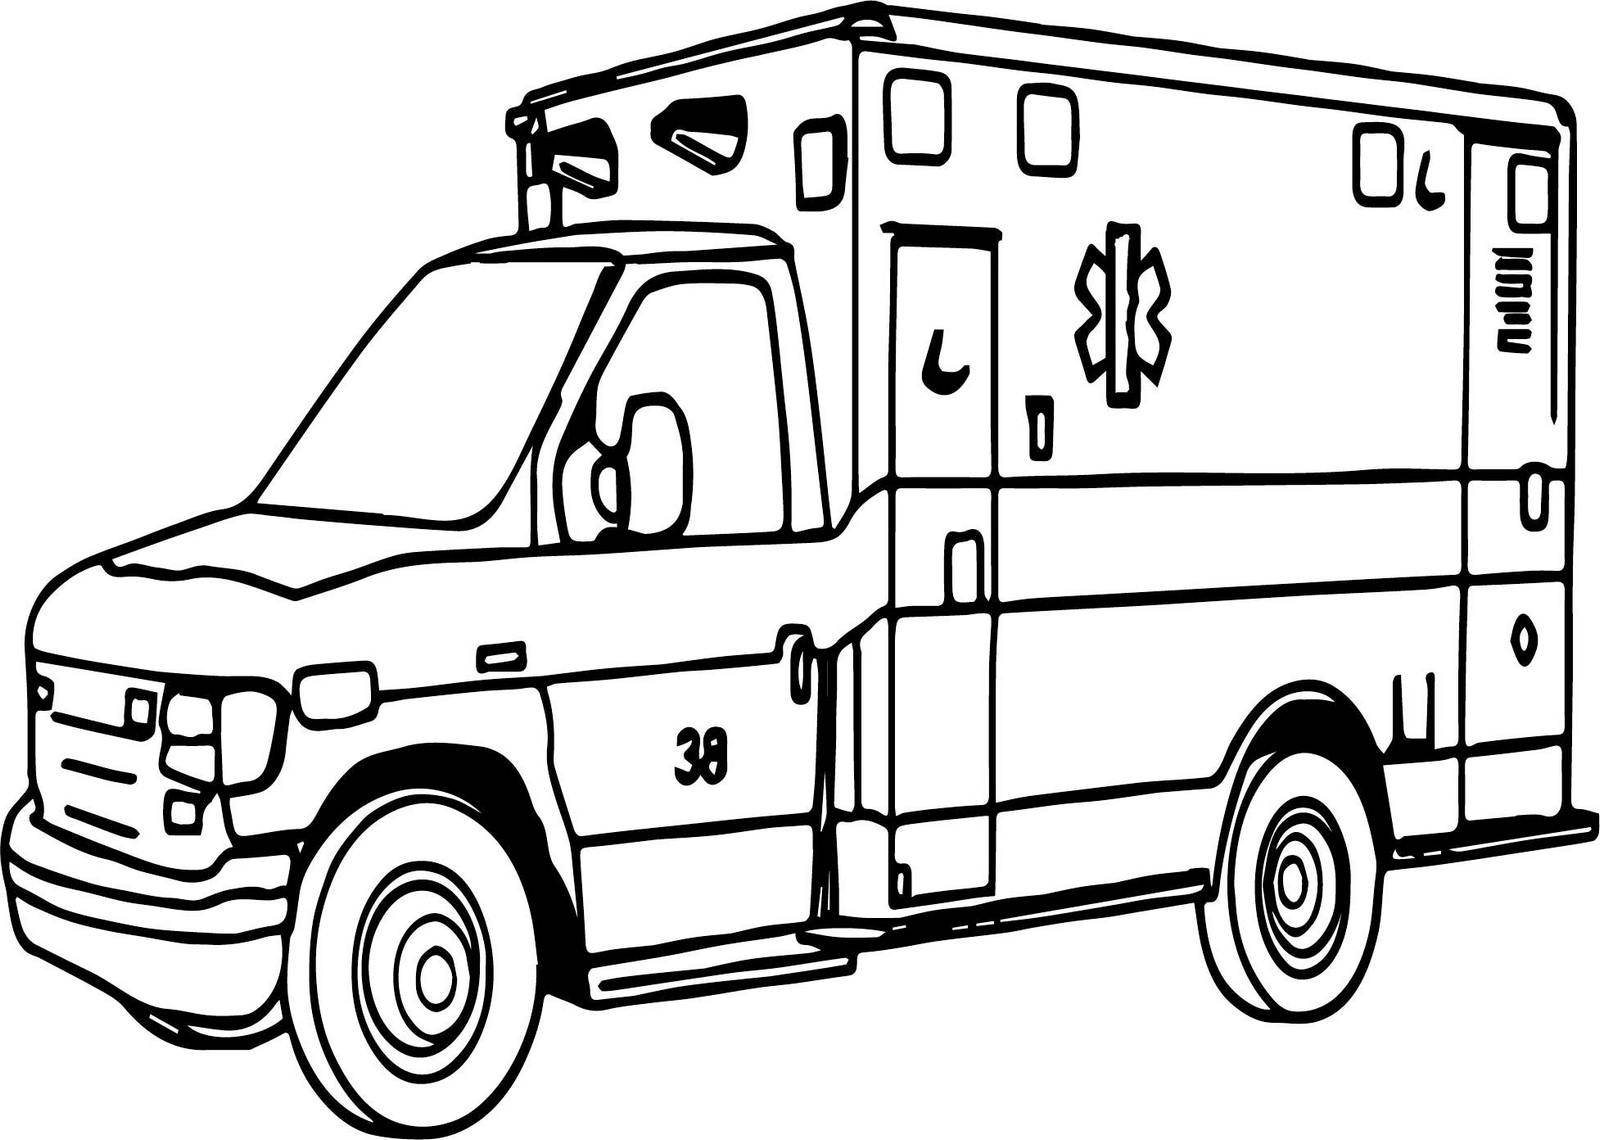 hospital medical care facility ambulance coloring sheet